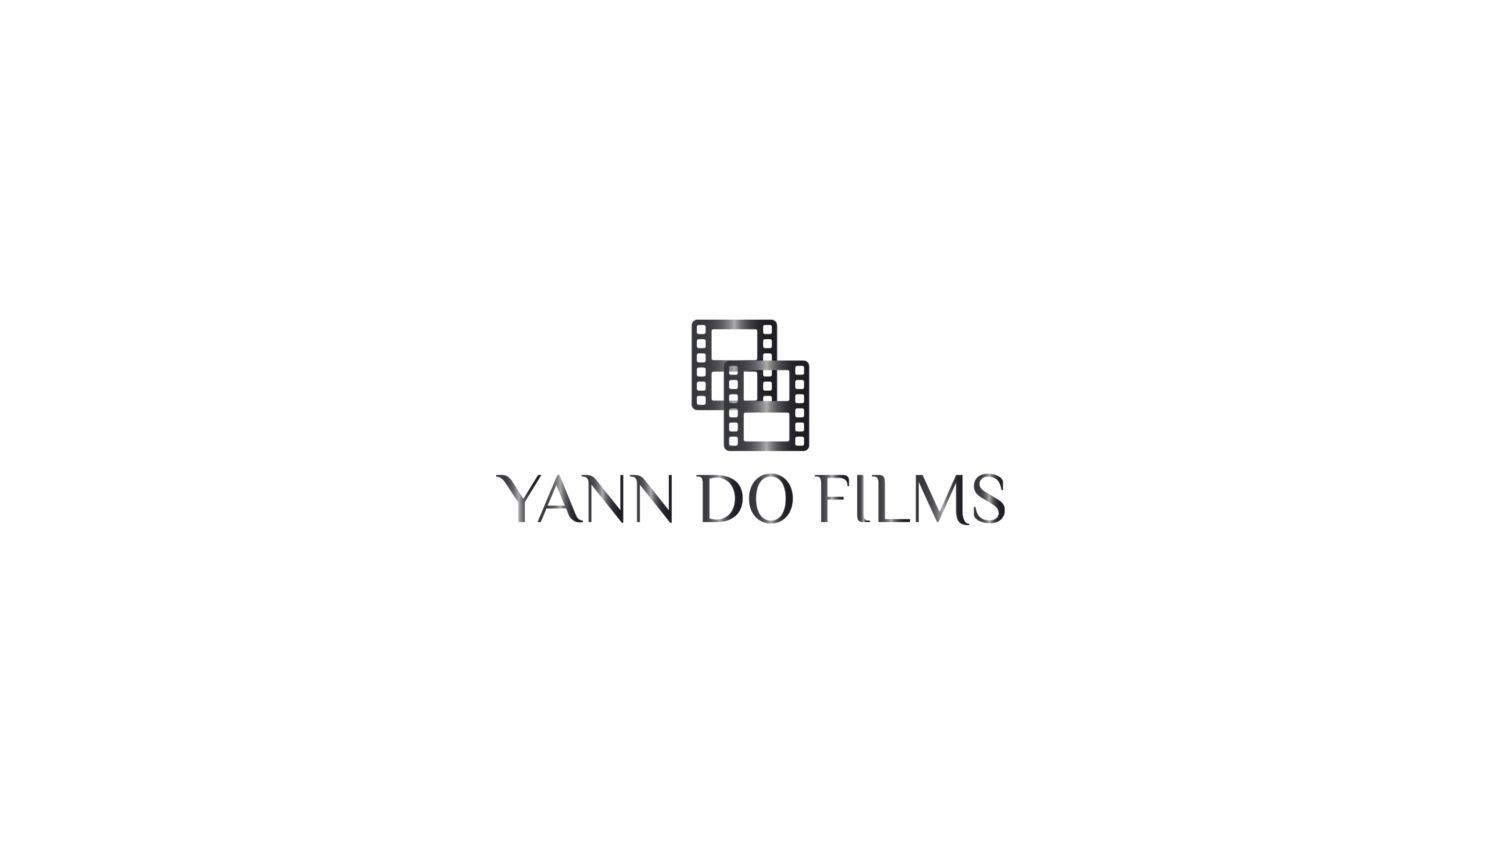 Yann Do Films